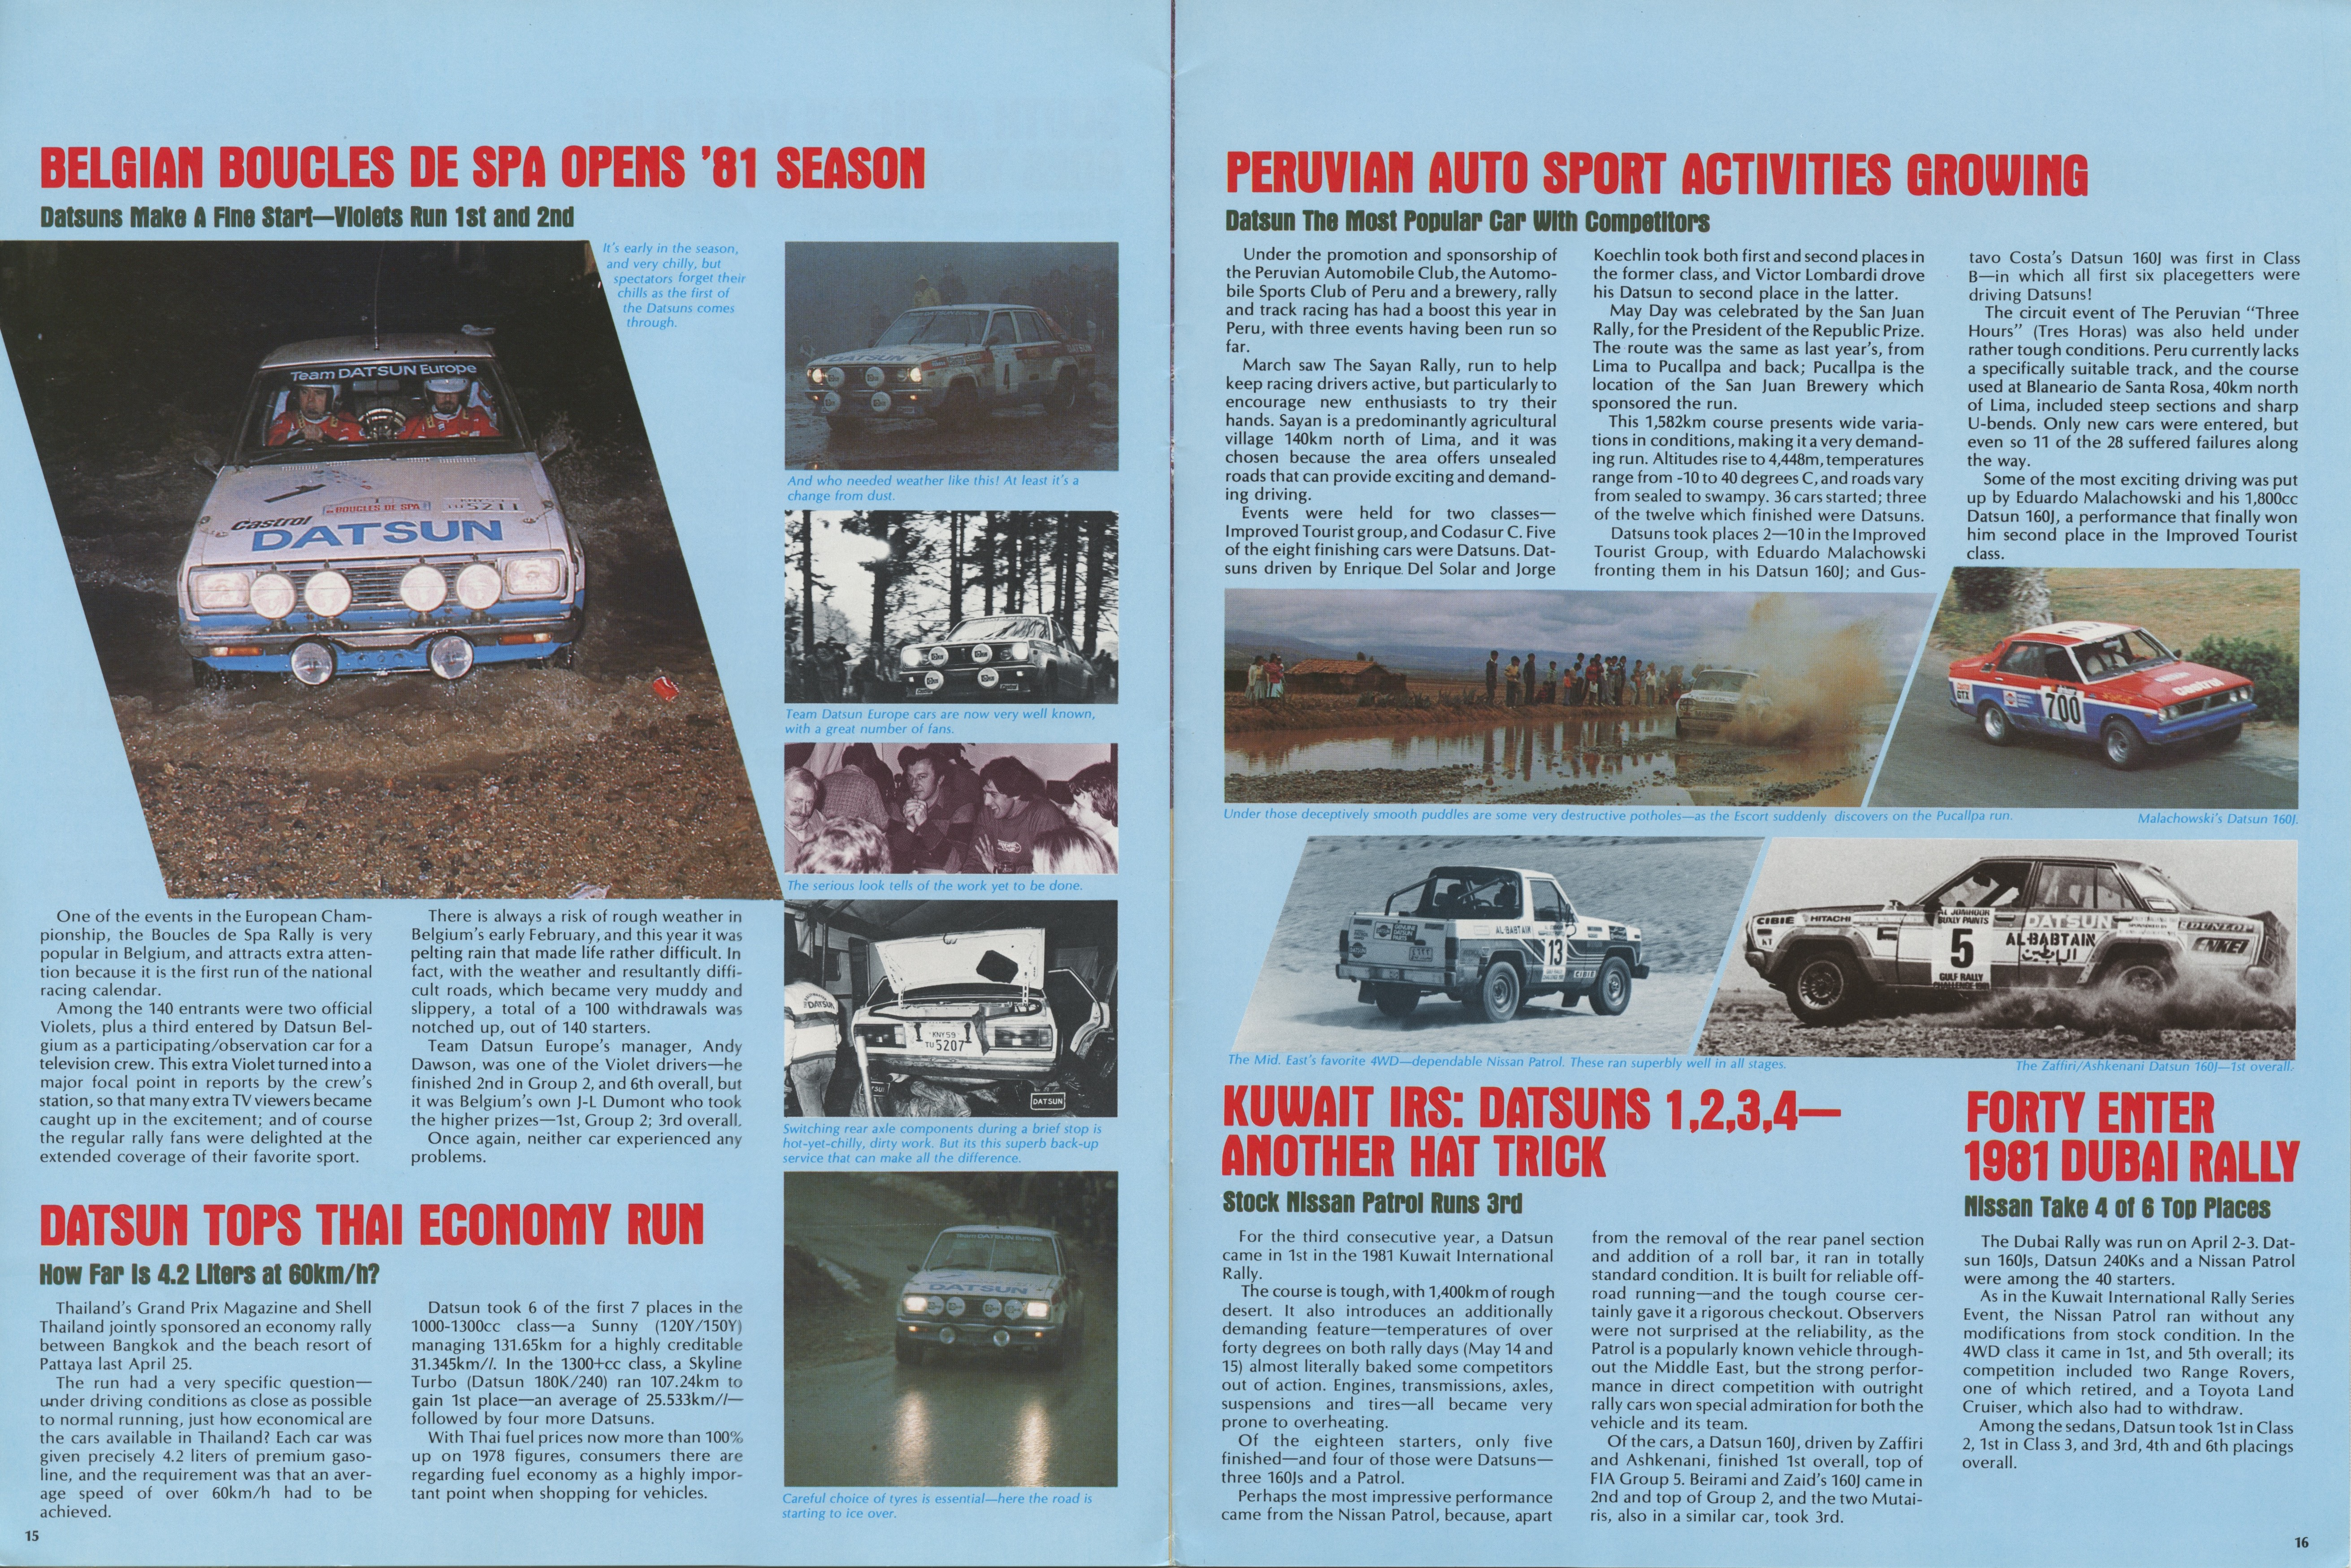 nissan-datsun-rally-race-digest-page-15-16